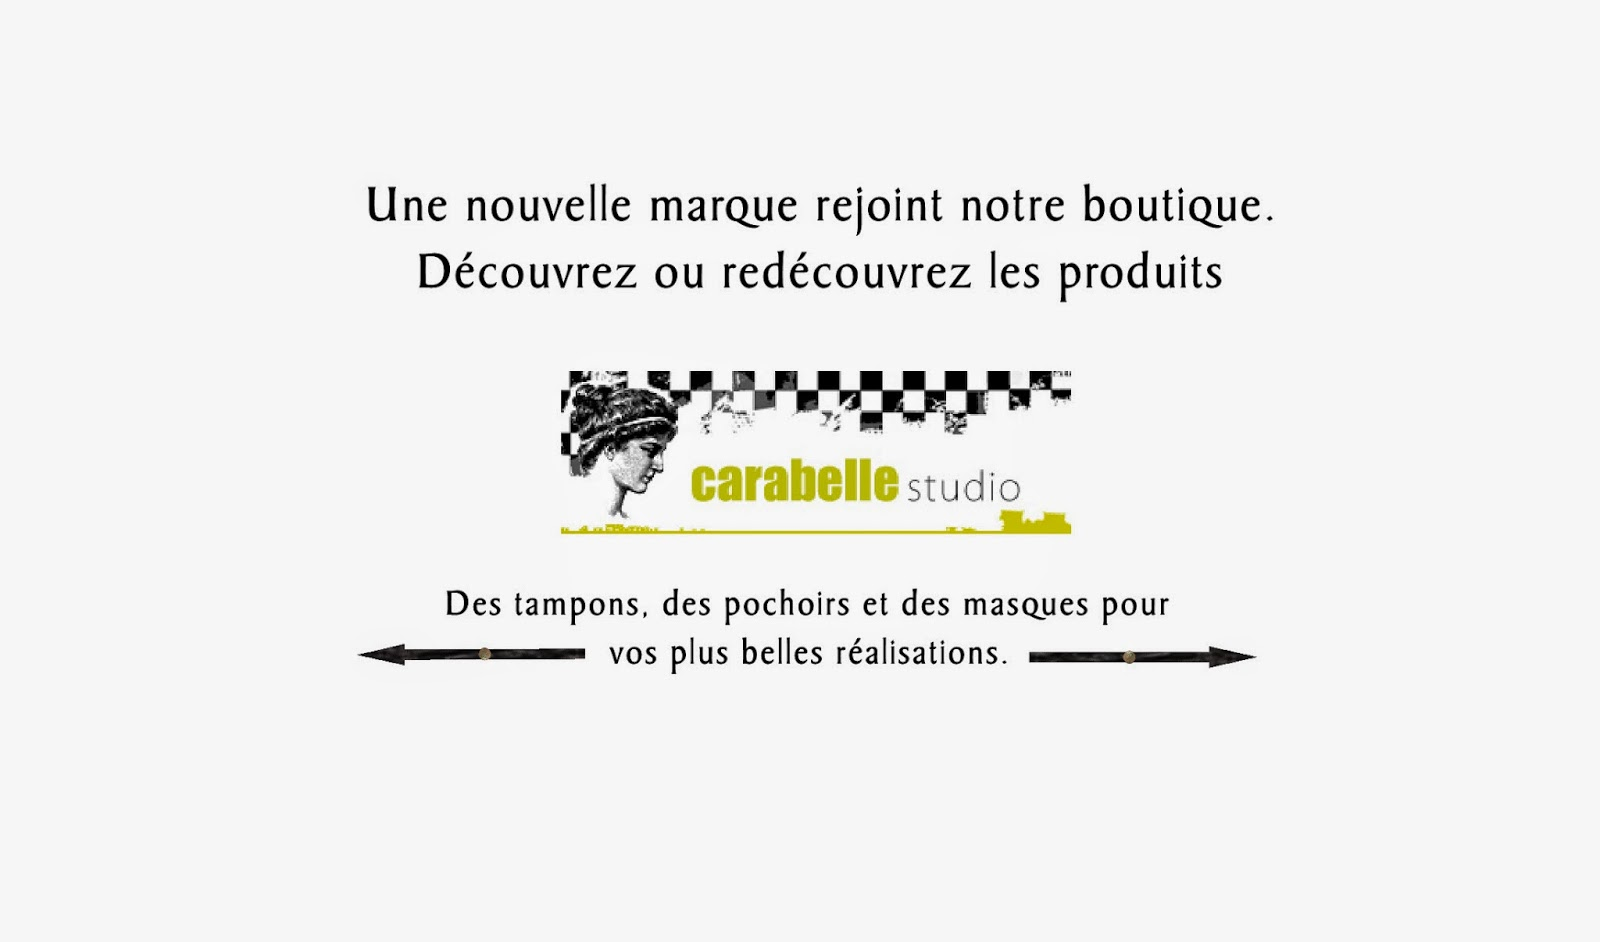 http://www.aubergedesloisirs.com/36_carabelle-studio